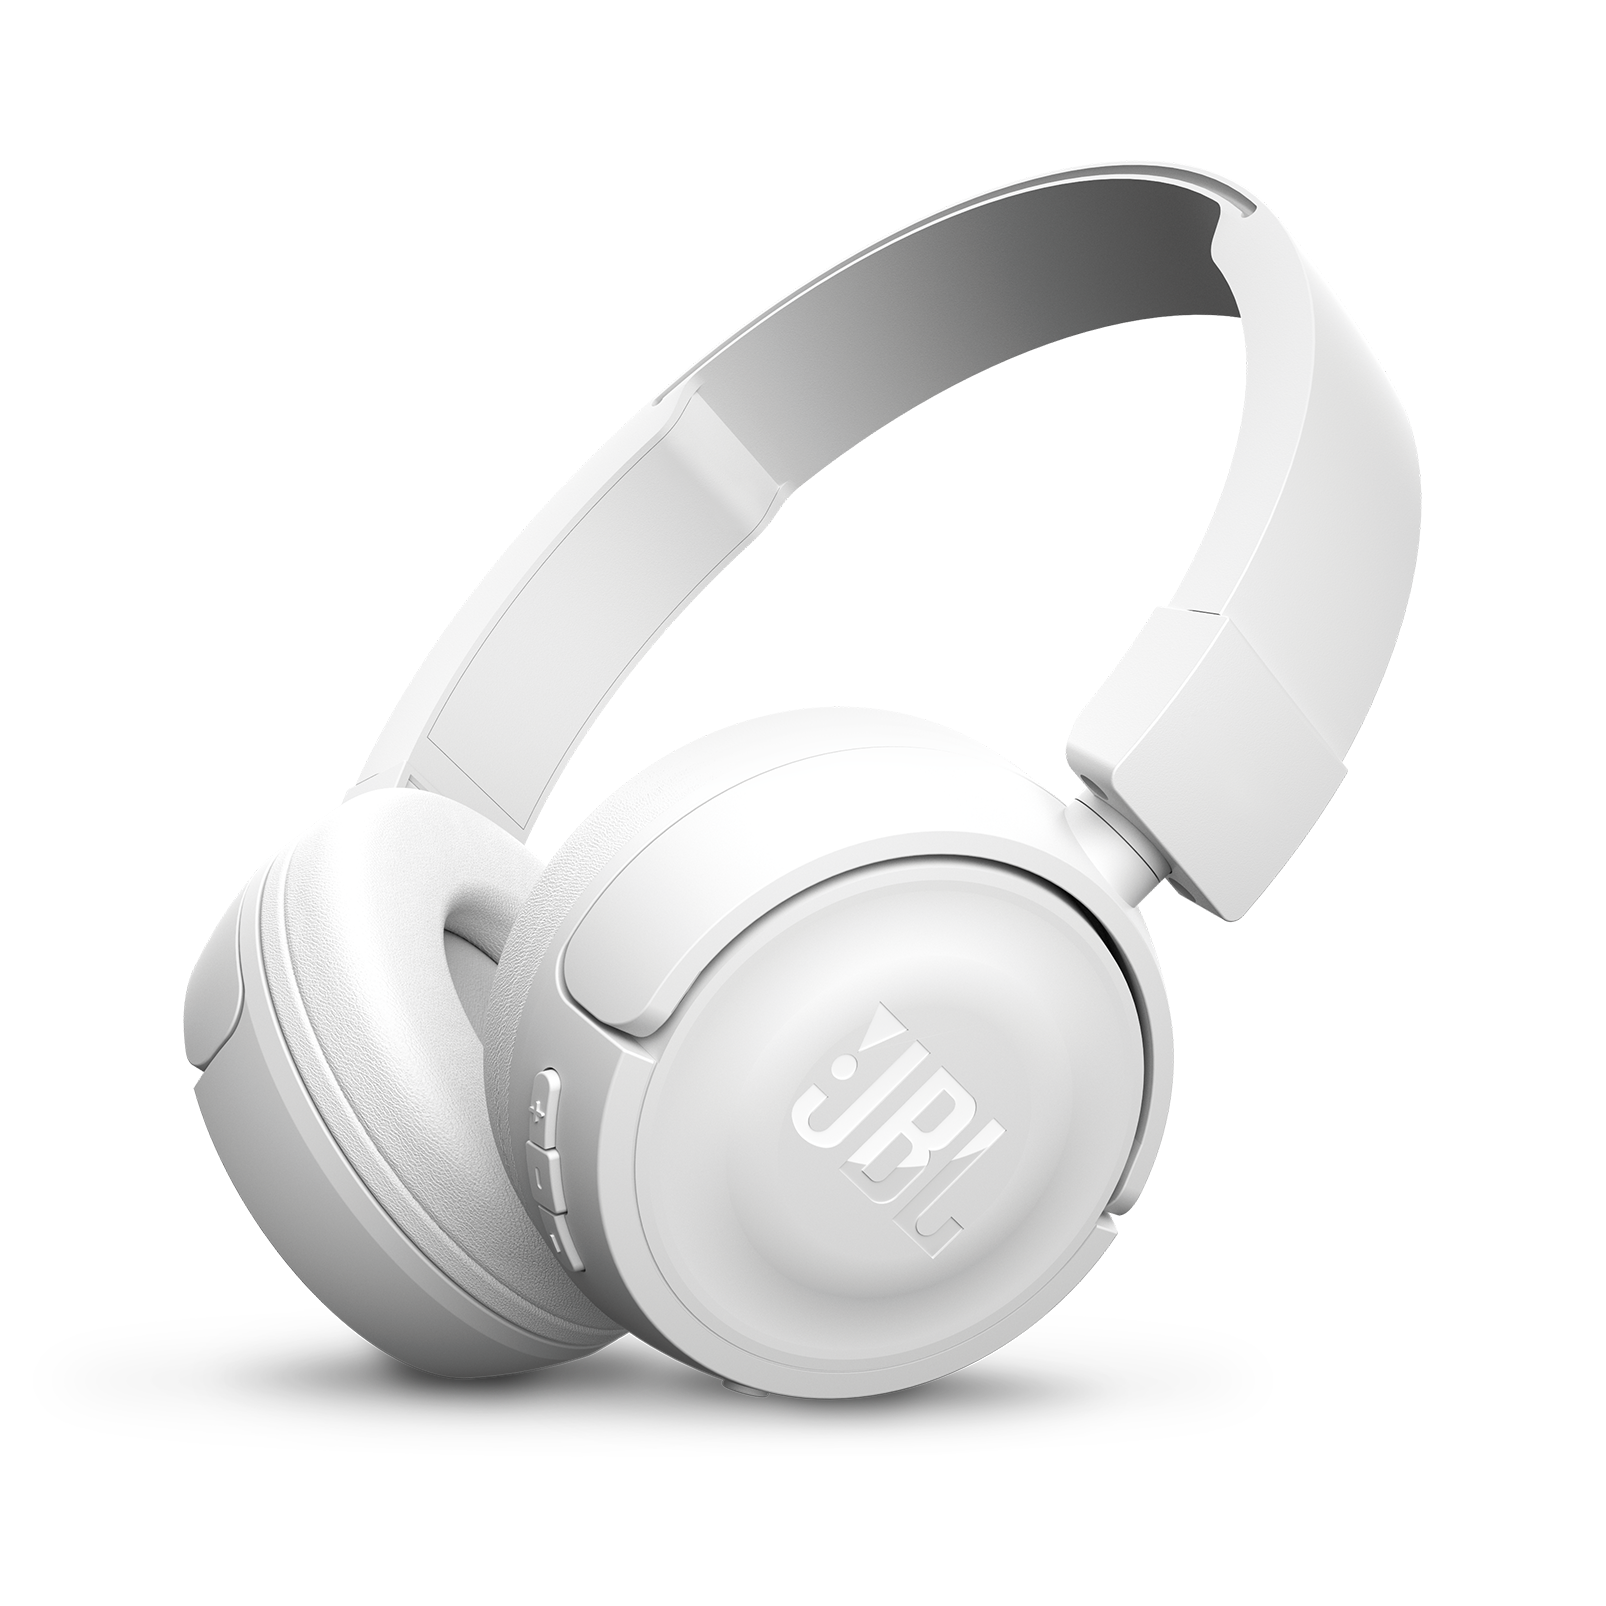 JBL T450BT - White - Wireless on-ear headphones - Hero